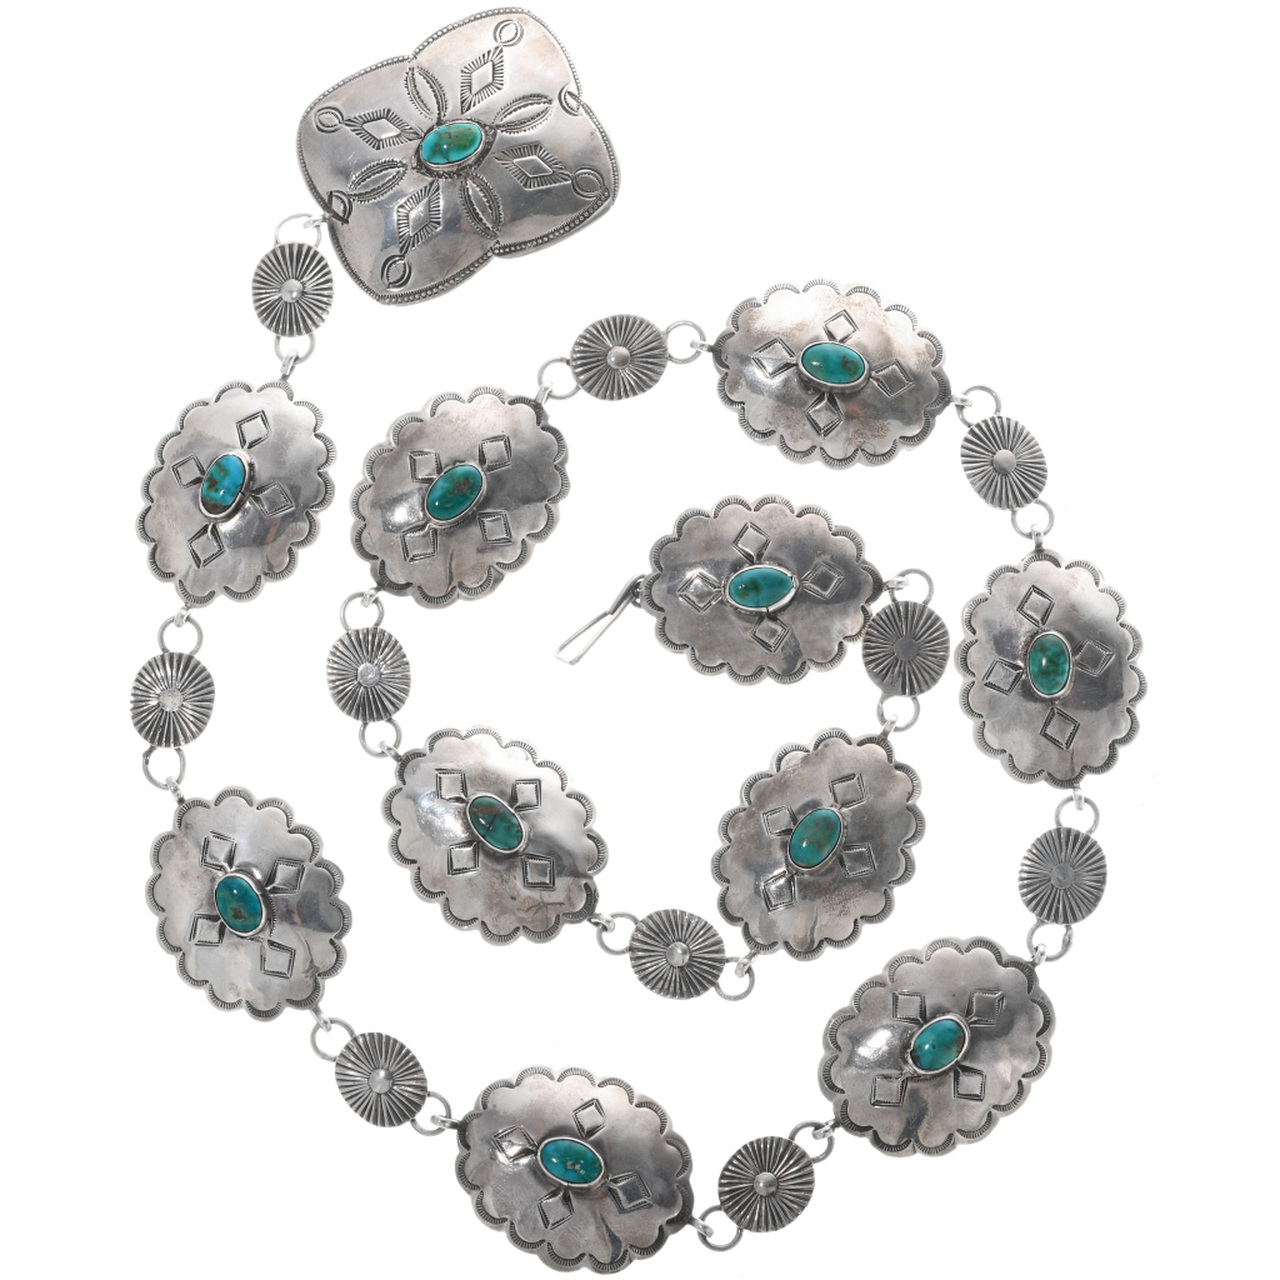 f6bbcebd2 Vintage Native American Silver Turquoise Concho Belt 33255